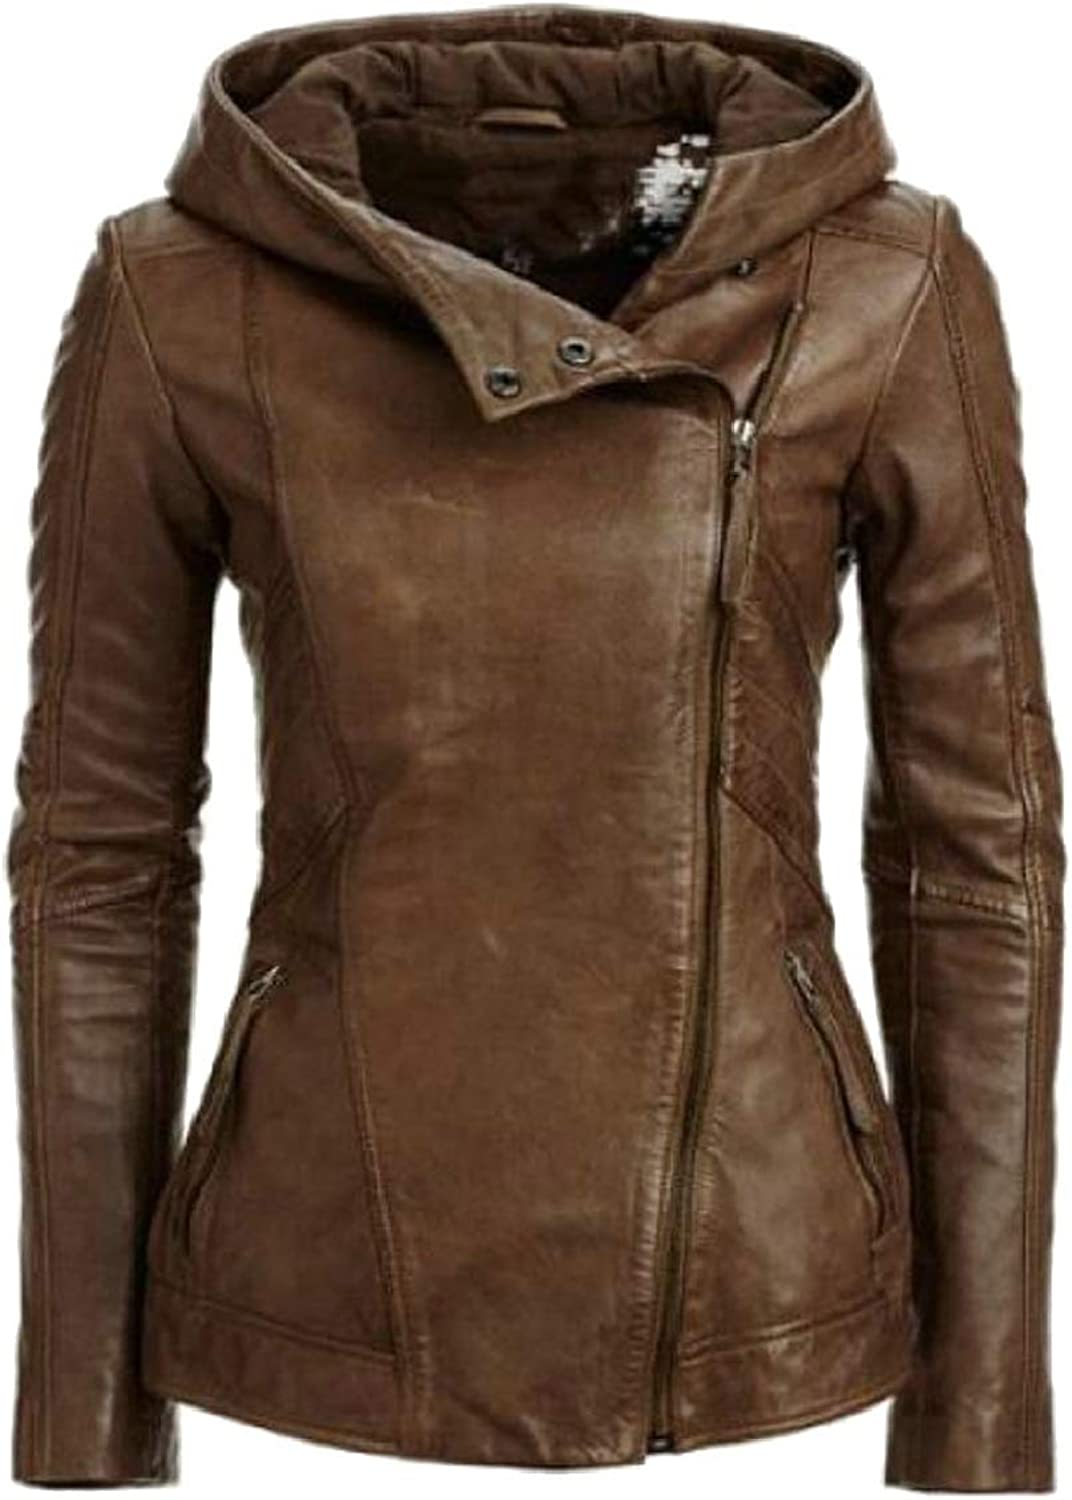 LKCENCA Womens Vintage Faux Leather Front Zipper Motorcycle Jacket Hoodie